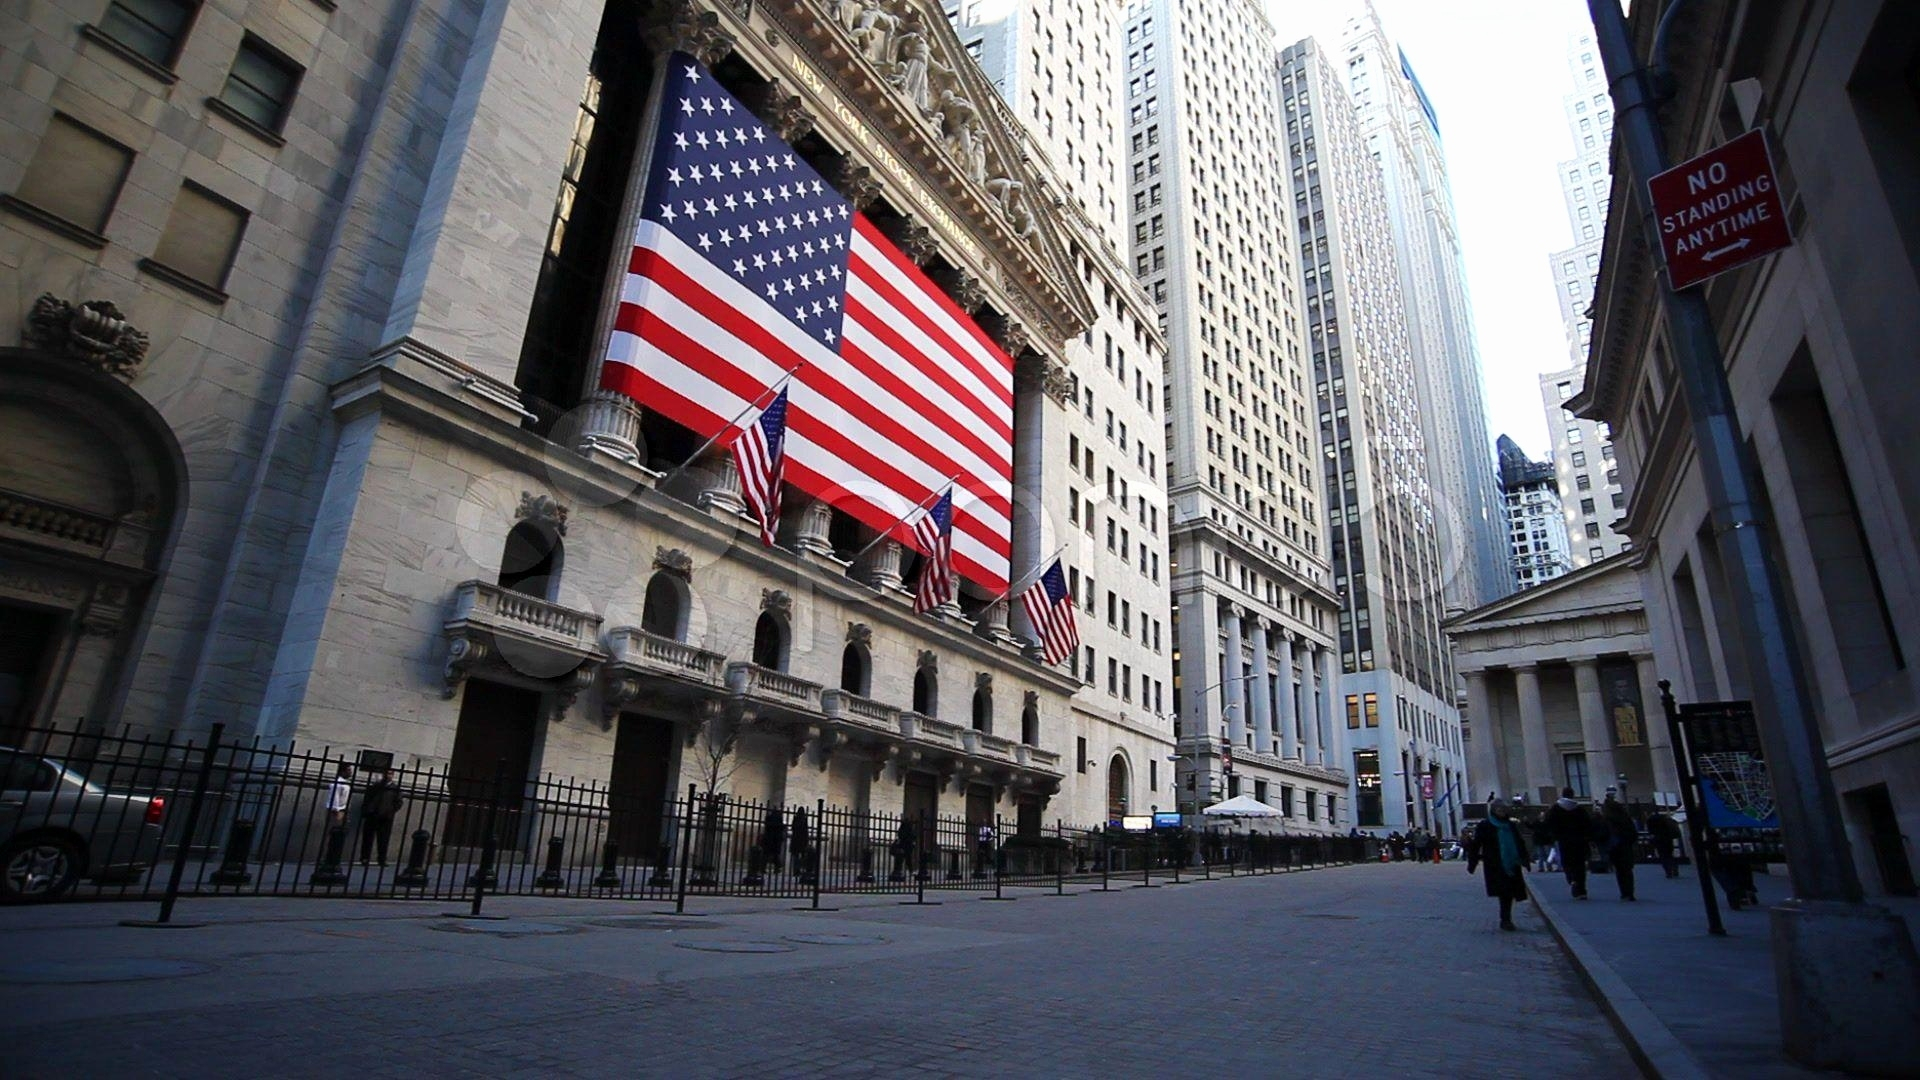 Wall street background